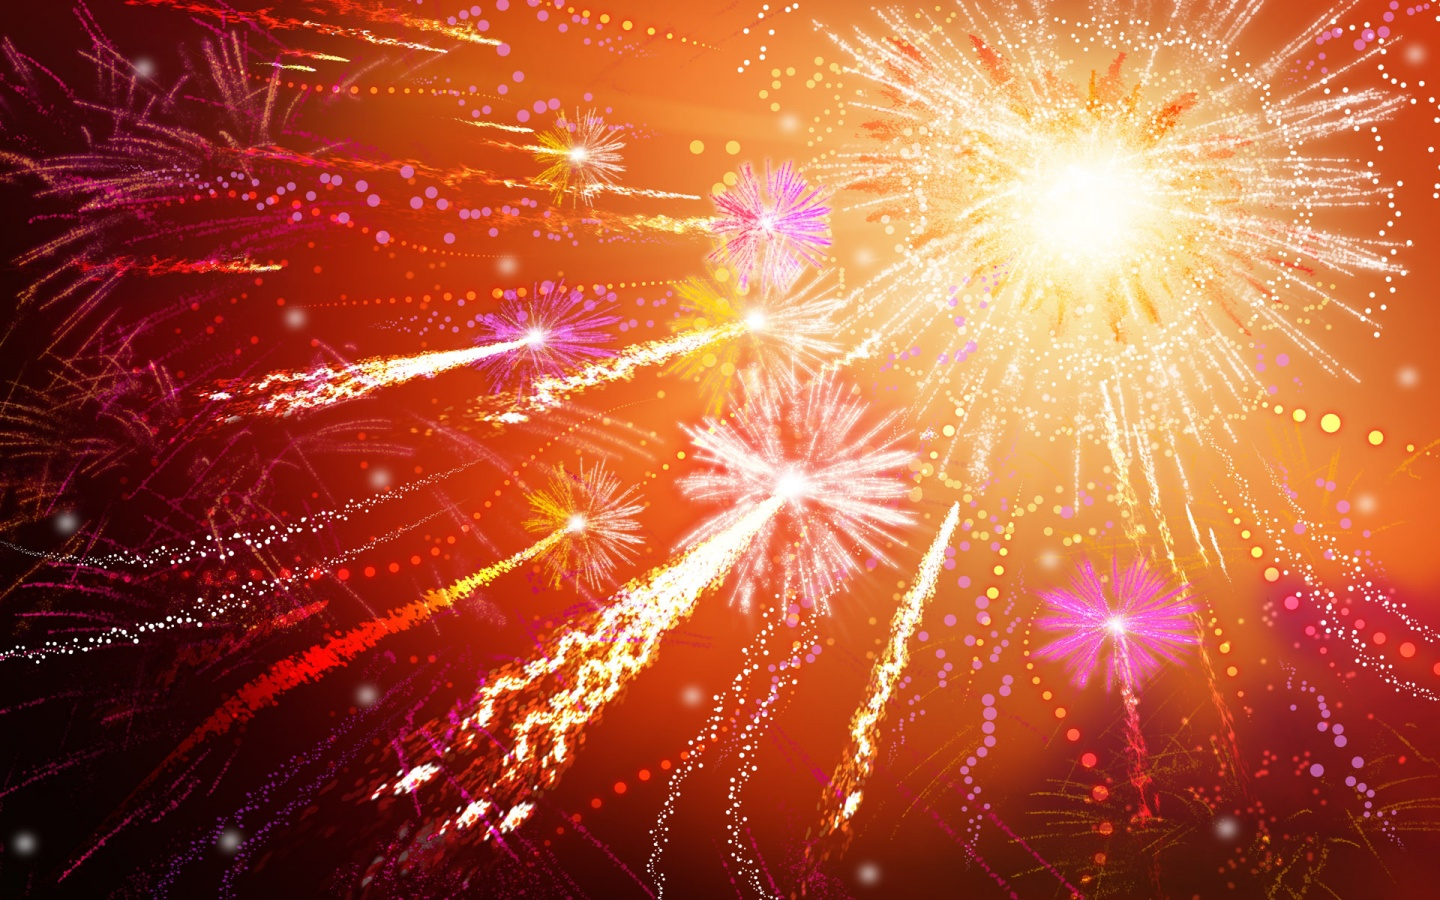 fireworks-wallpapers-fireworks-explosion-and-stock-photos-wallpaper